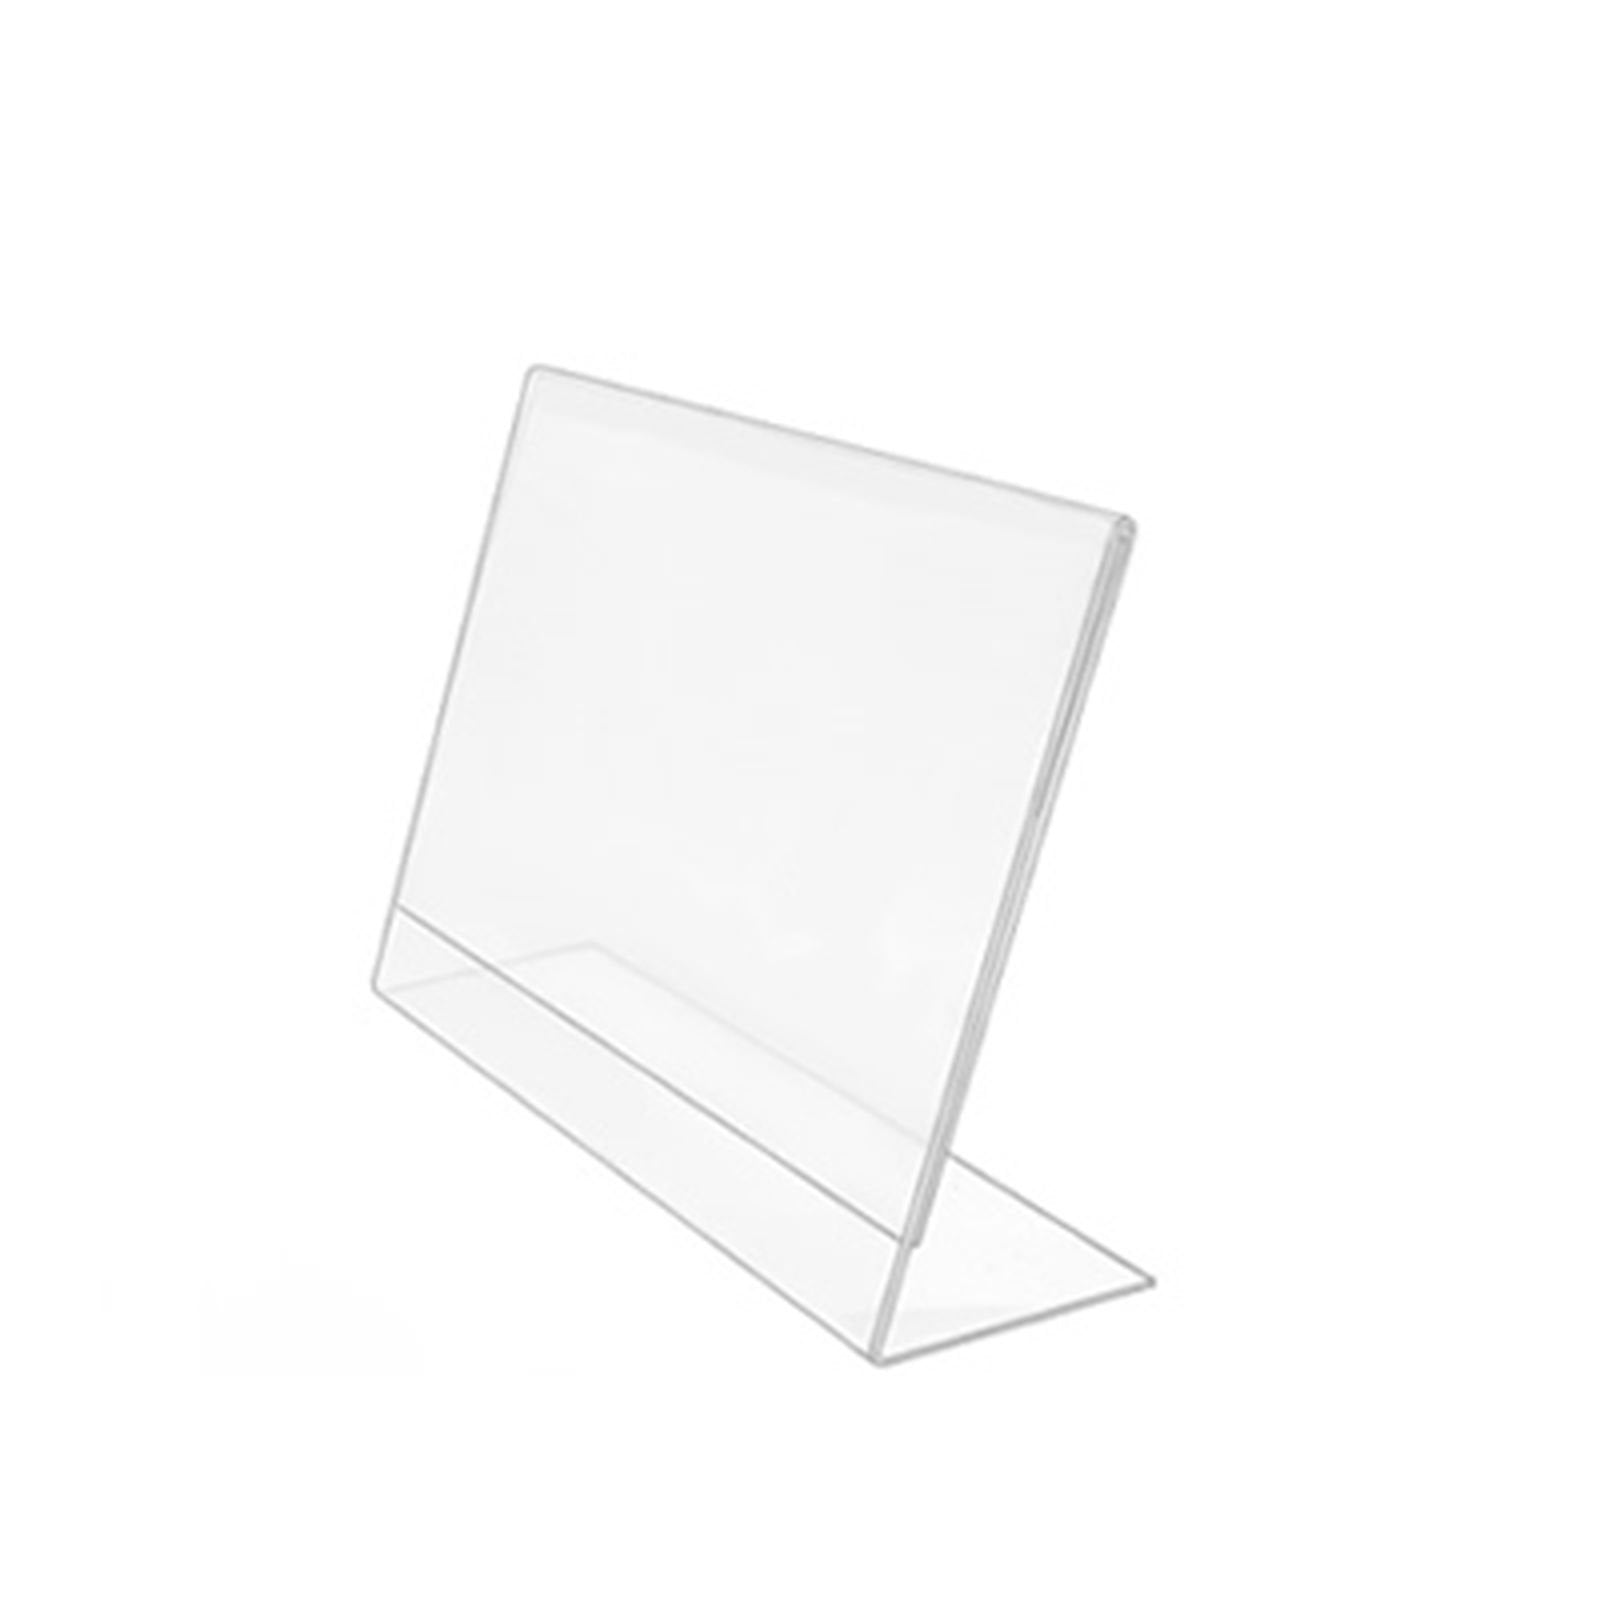 Poster Holder A4 Acrylic POS Leanback display Landscape